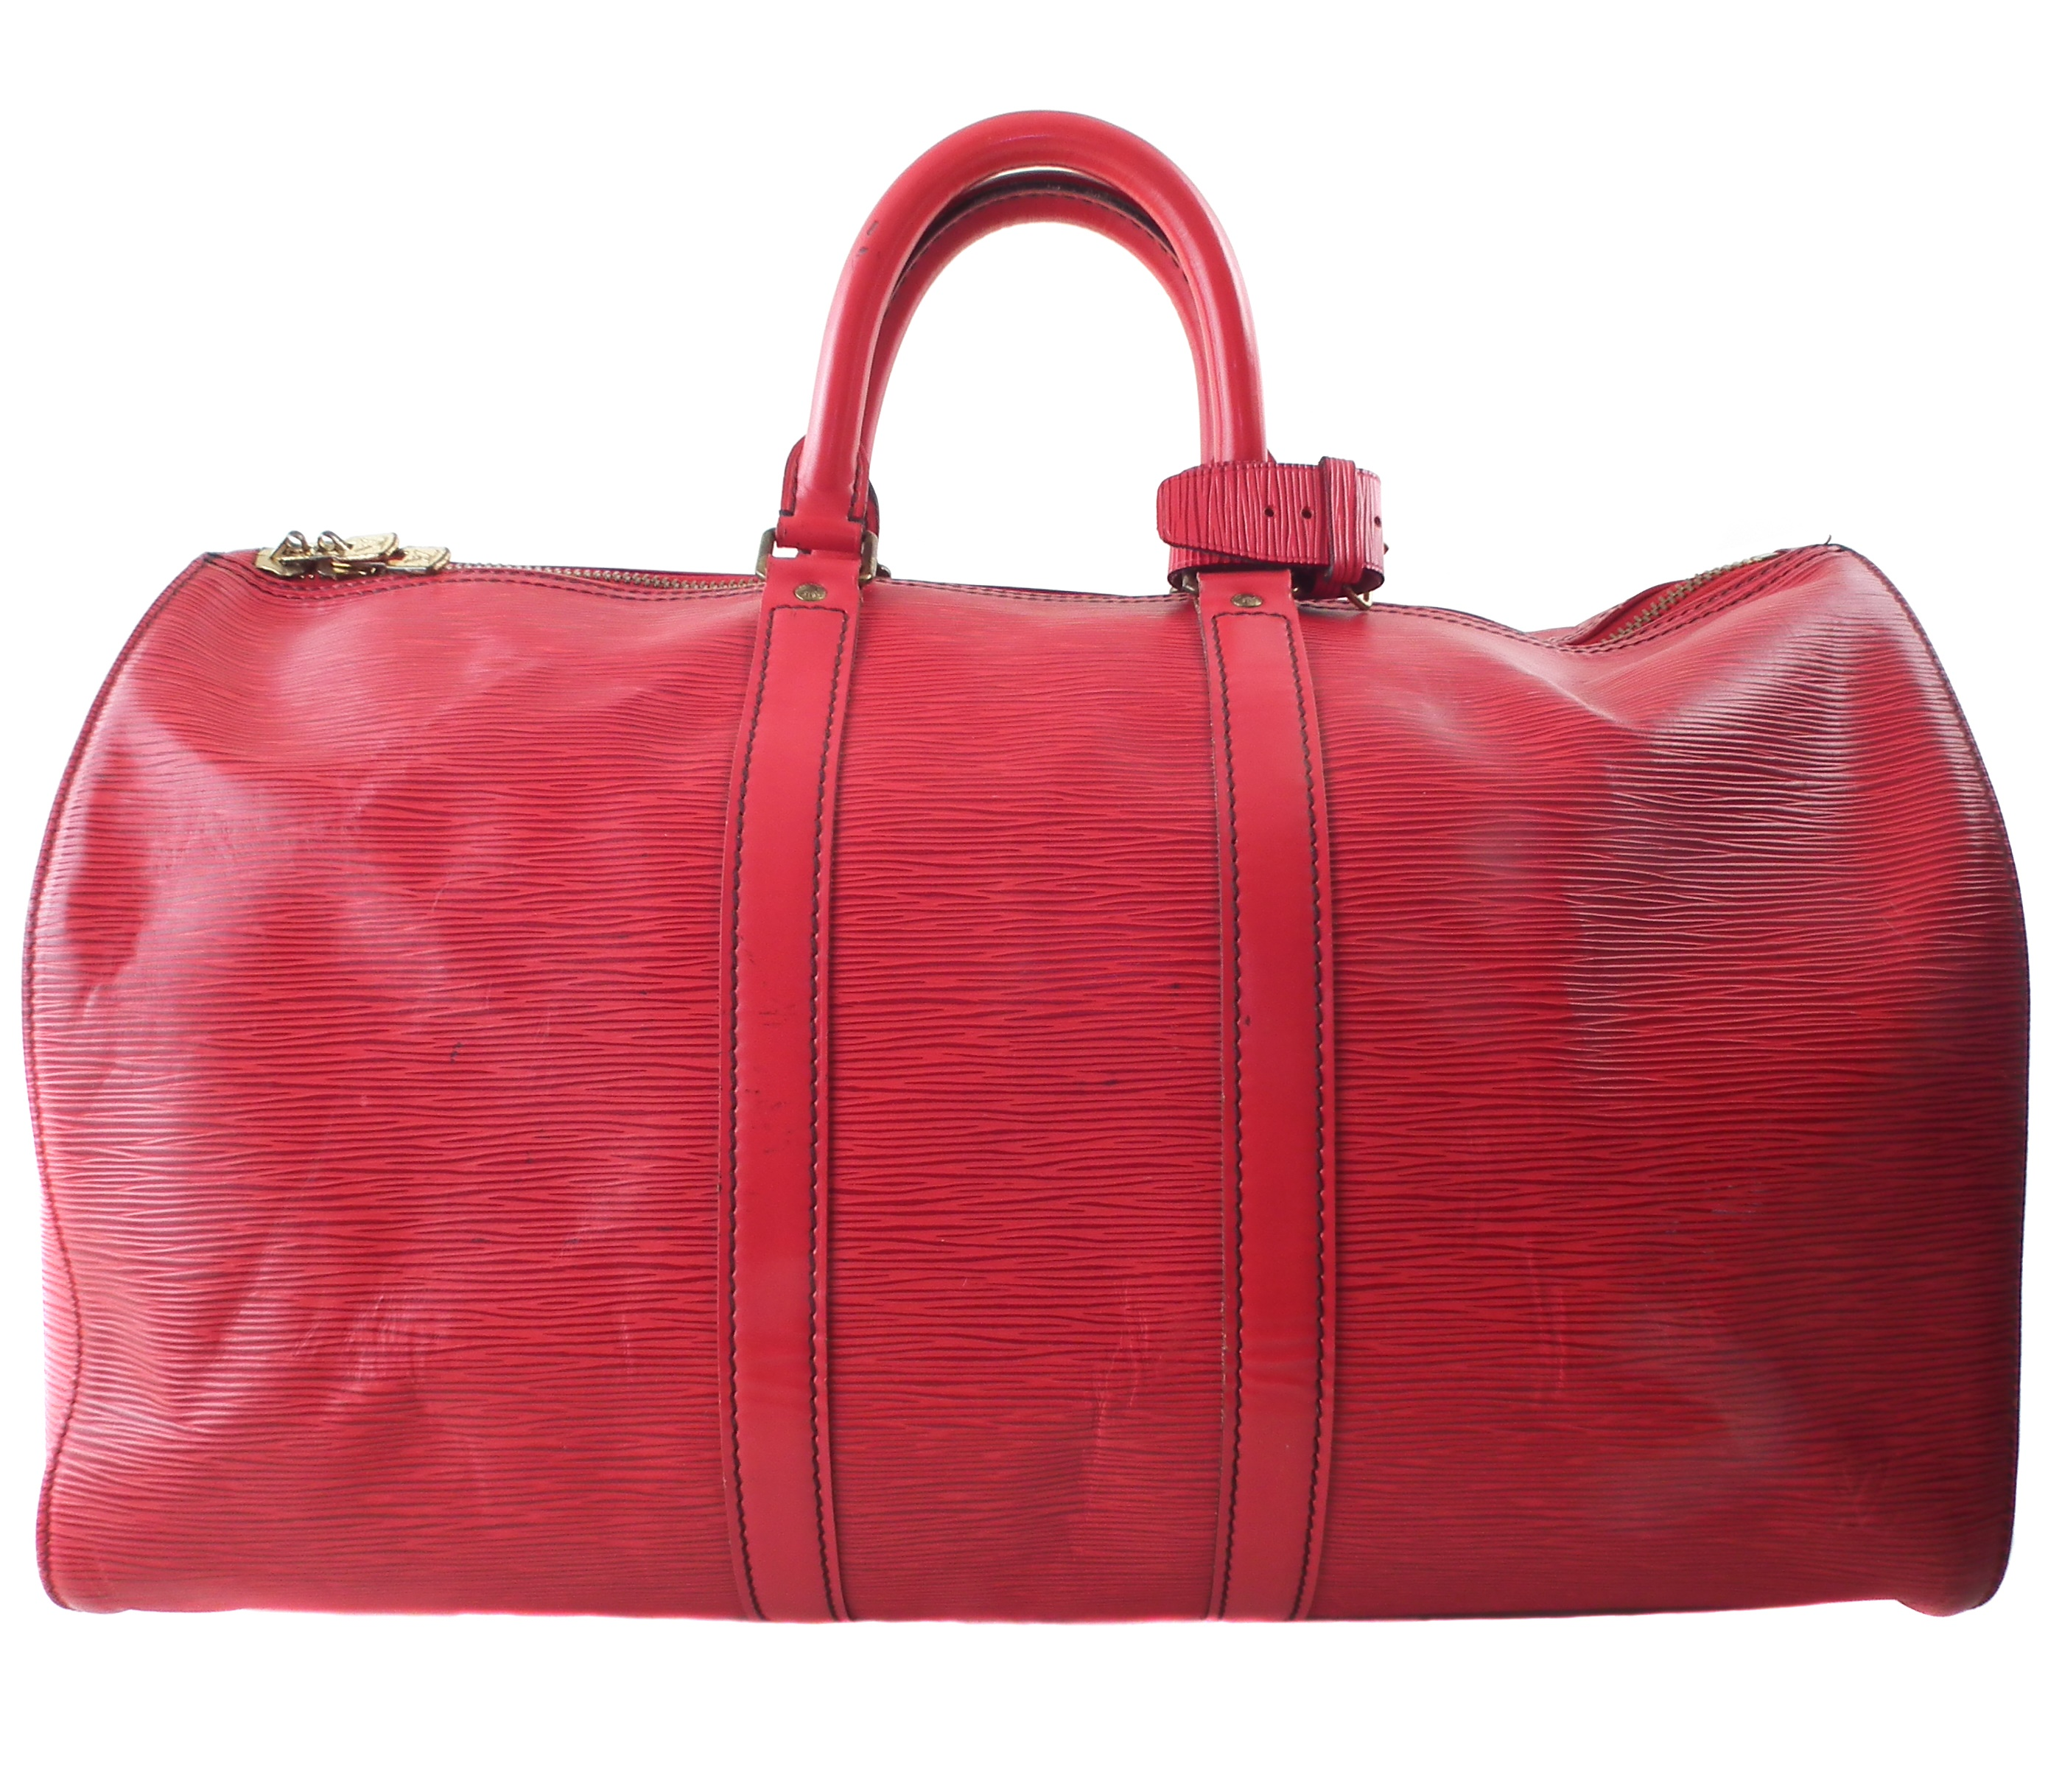 A Louis Vuitton red Epi Keepall 45 luggage bag